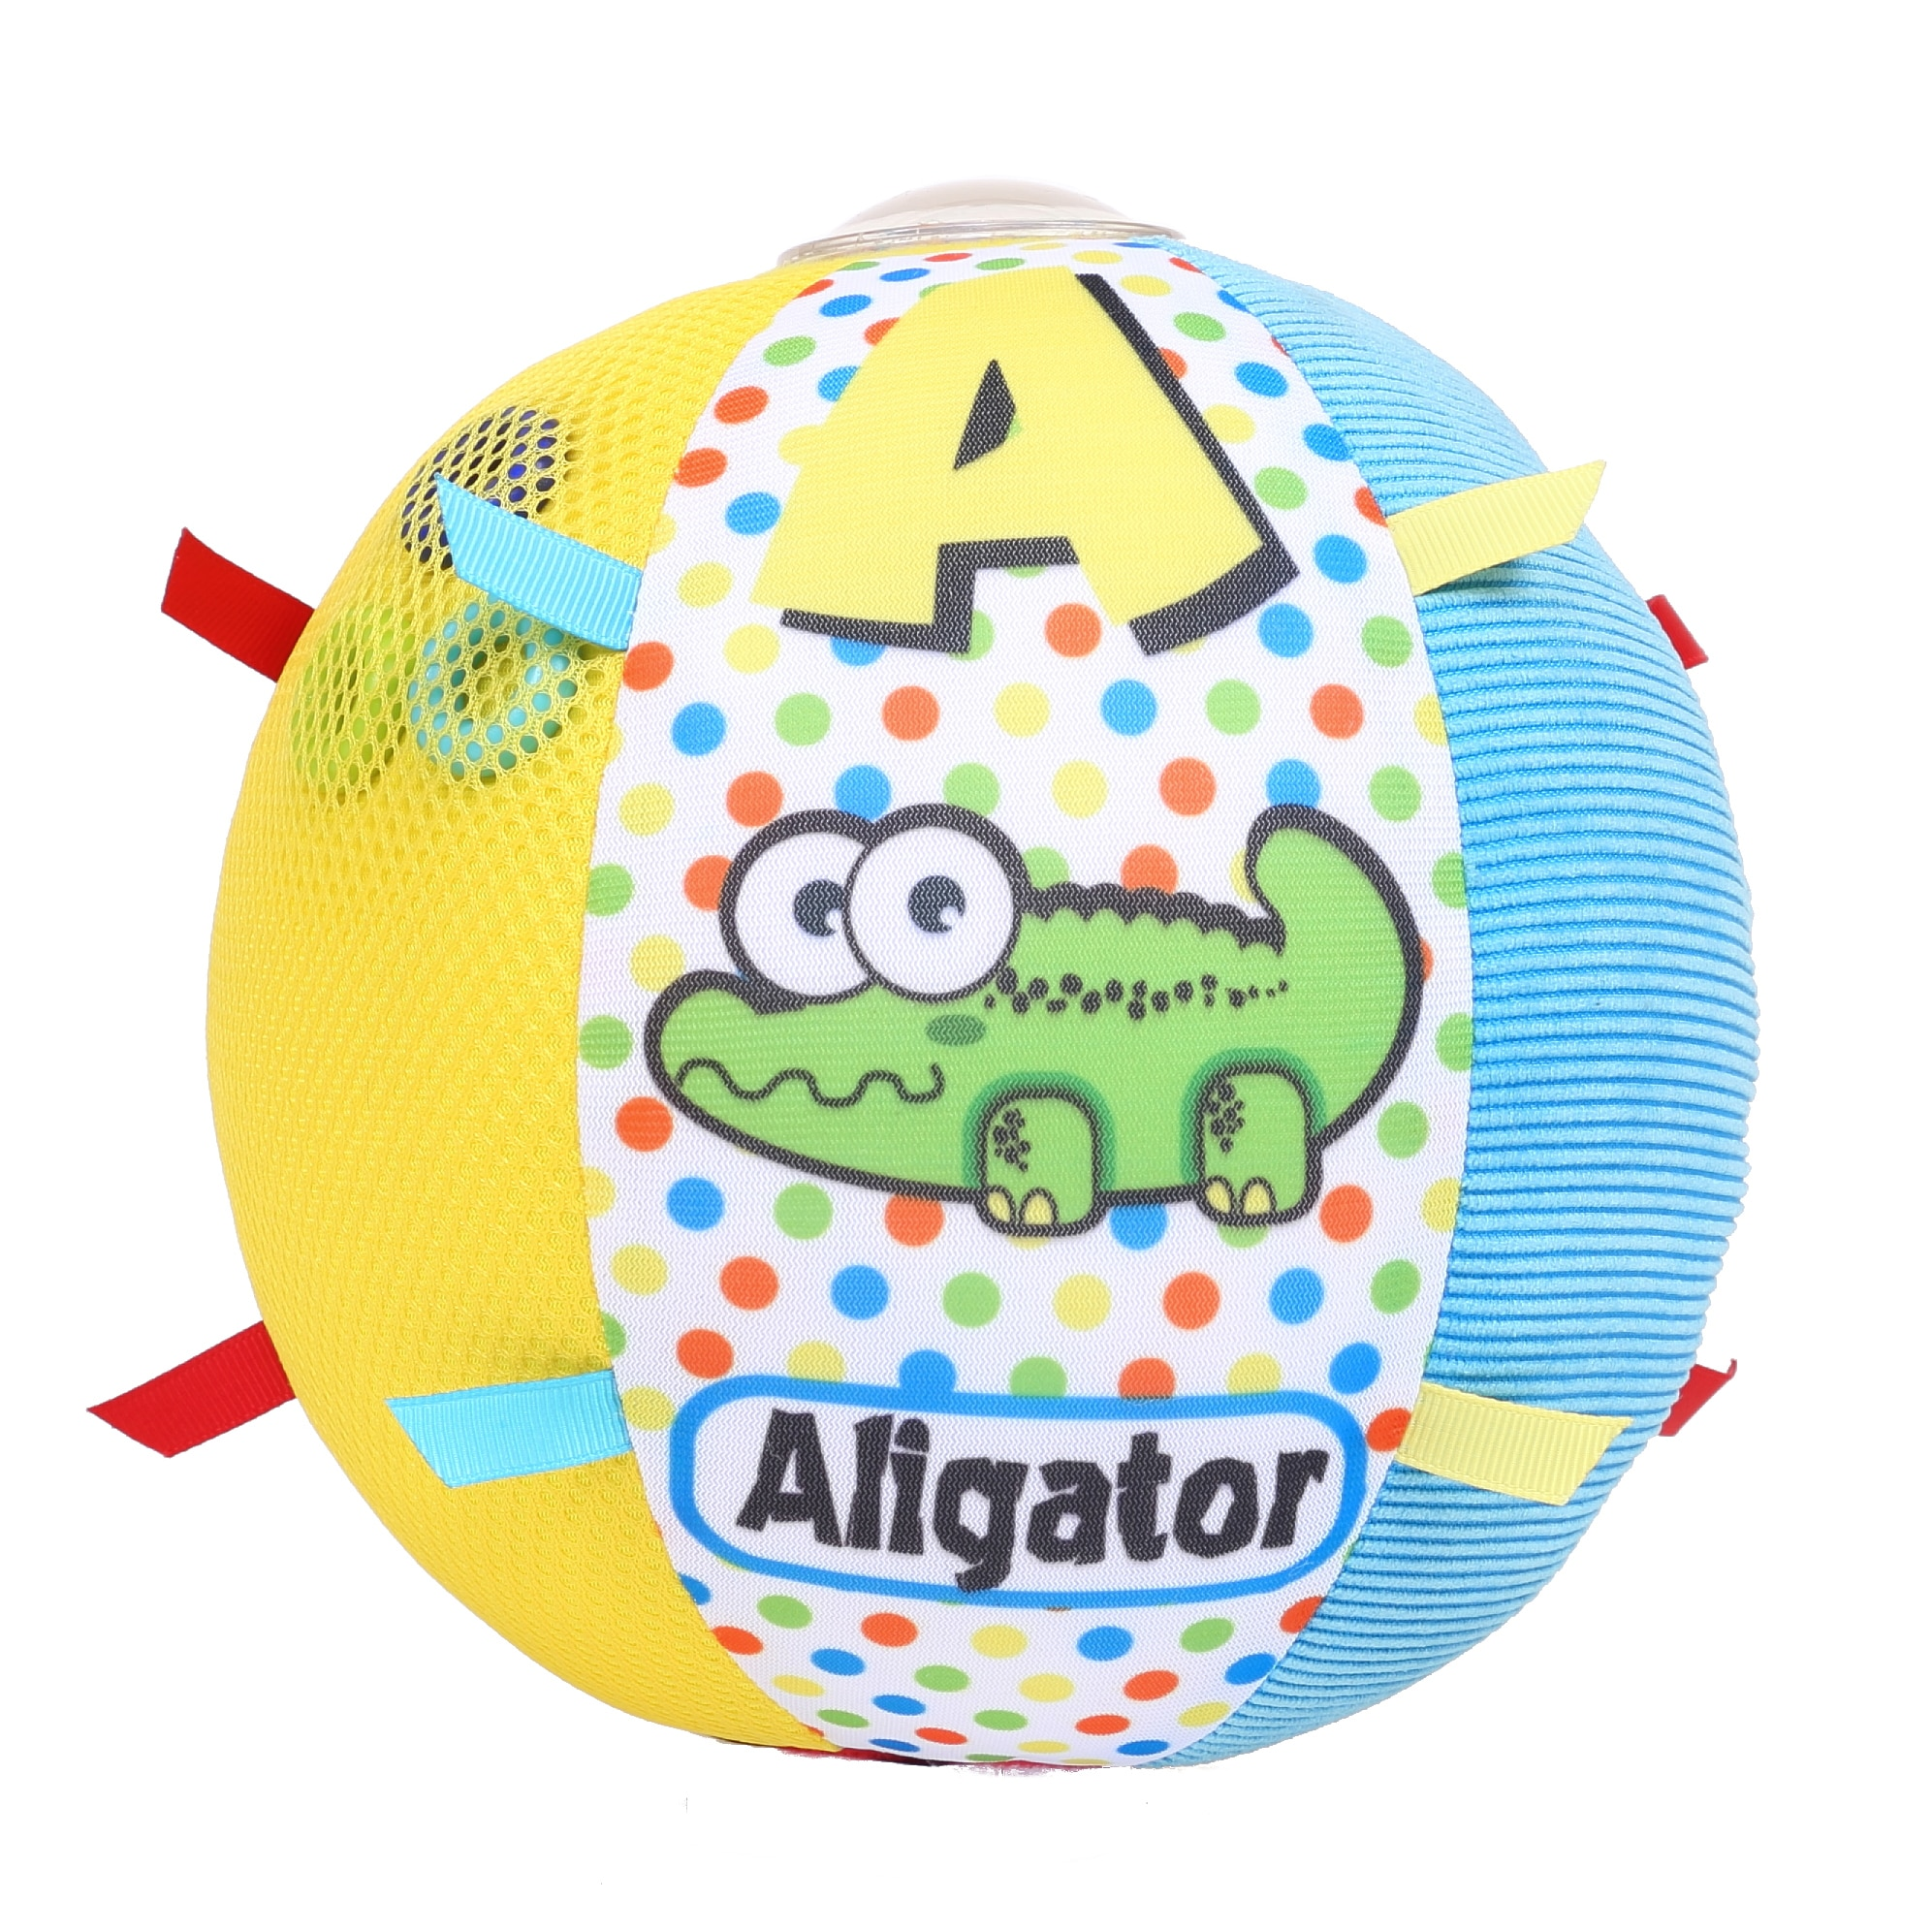 Fotografie Jucarie interactiva M-Toys - Minge ABC Discovery, 18 cm